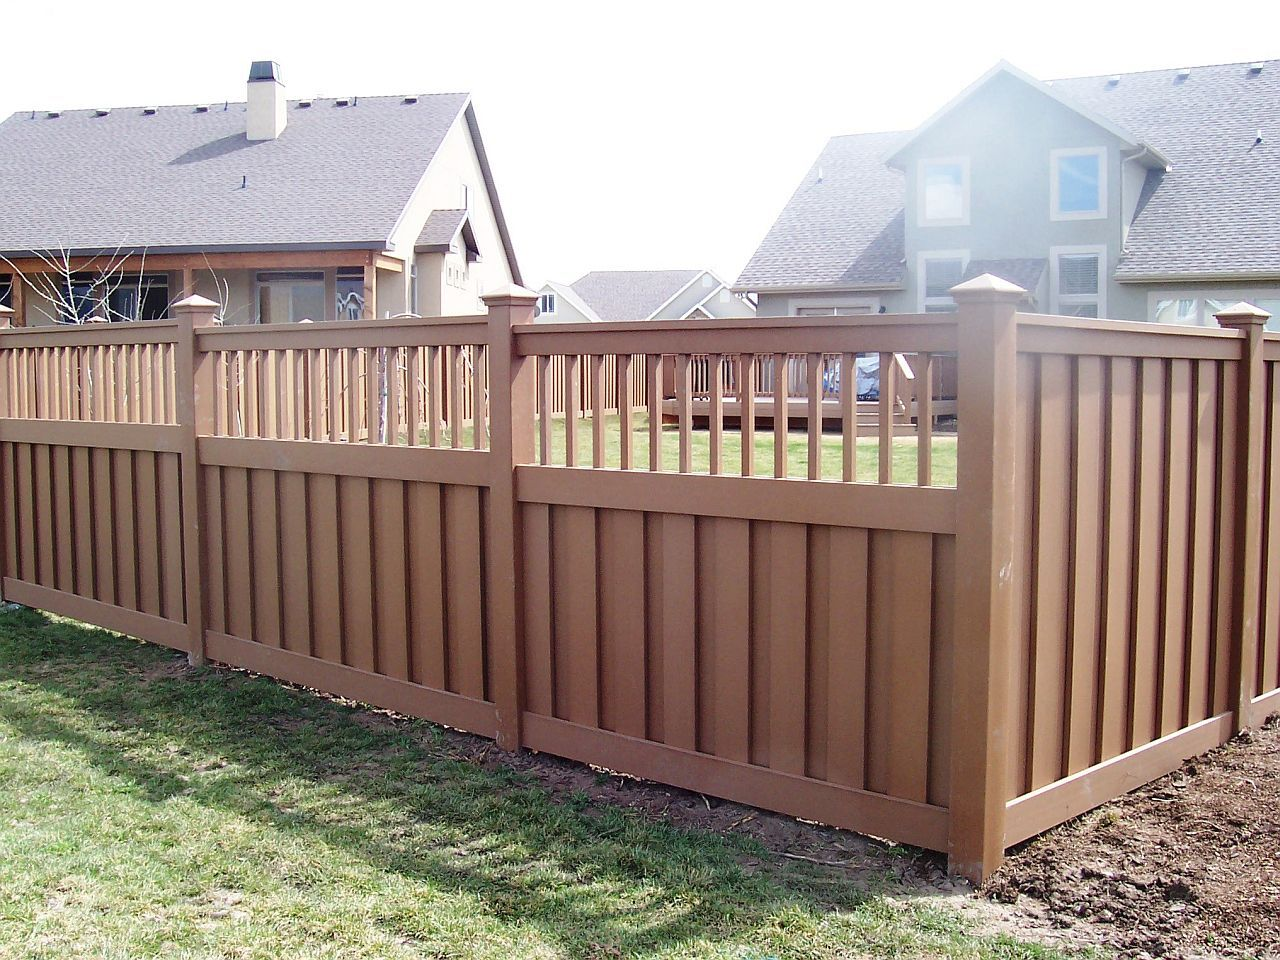 Wooden Fence Designs Ideas farm style wooden fence design Cool Fence Ideas For Backyard Backyard Design Backyard Ideas